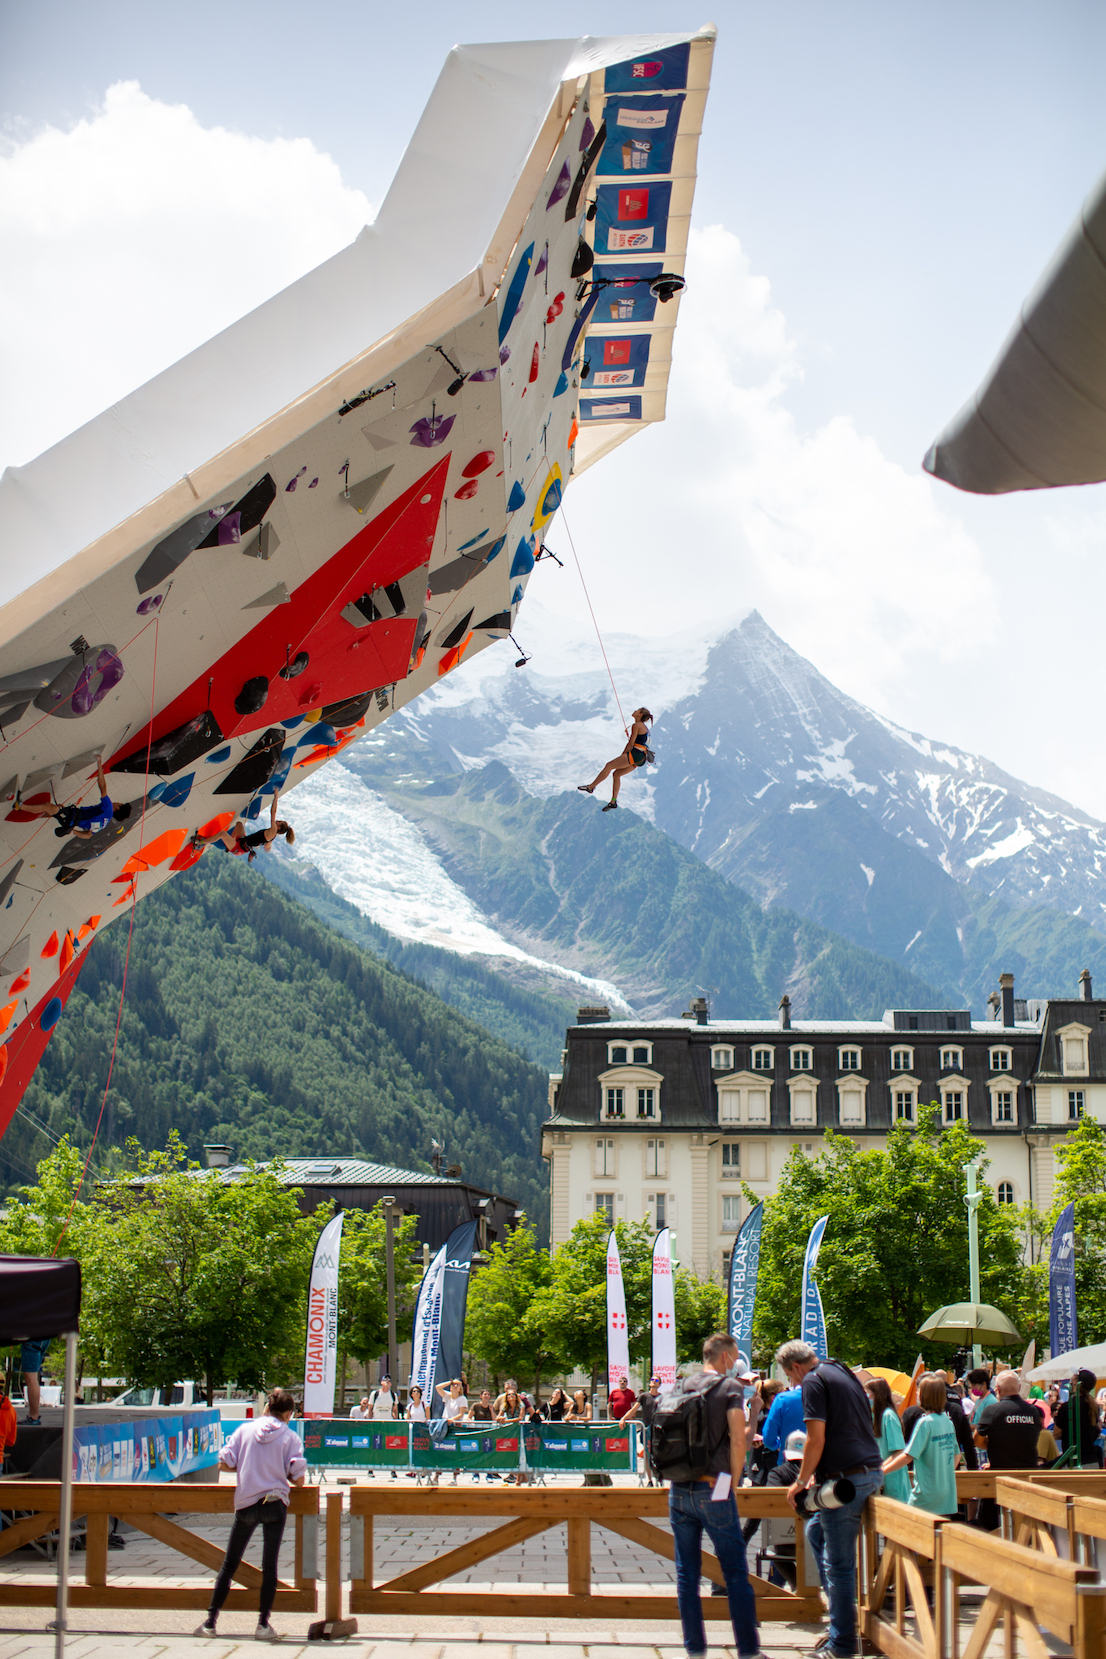 Molly Thompson-Smith climbing at the IFSC Lead World Cup in Chamonix